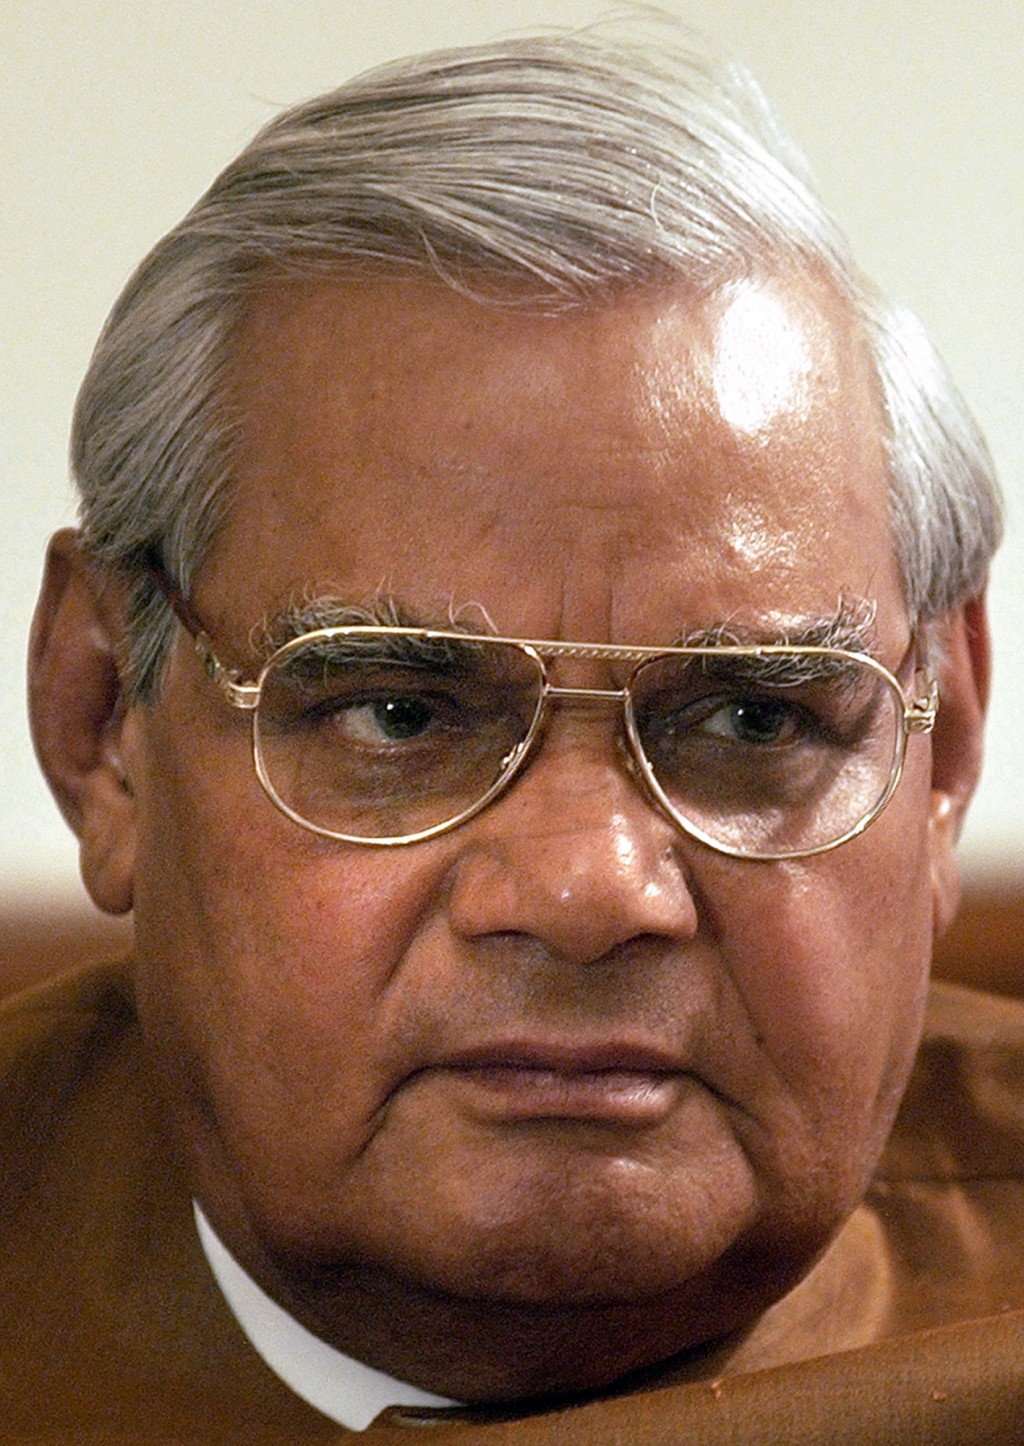 FILE - In this May 14, 2004 file photo, outgoing Indian Prime Minister Atal Bihari Vajpayee attends a meeting with members of his Bharatiya Janata Par...